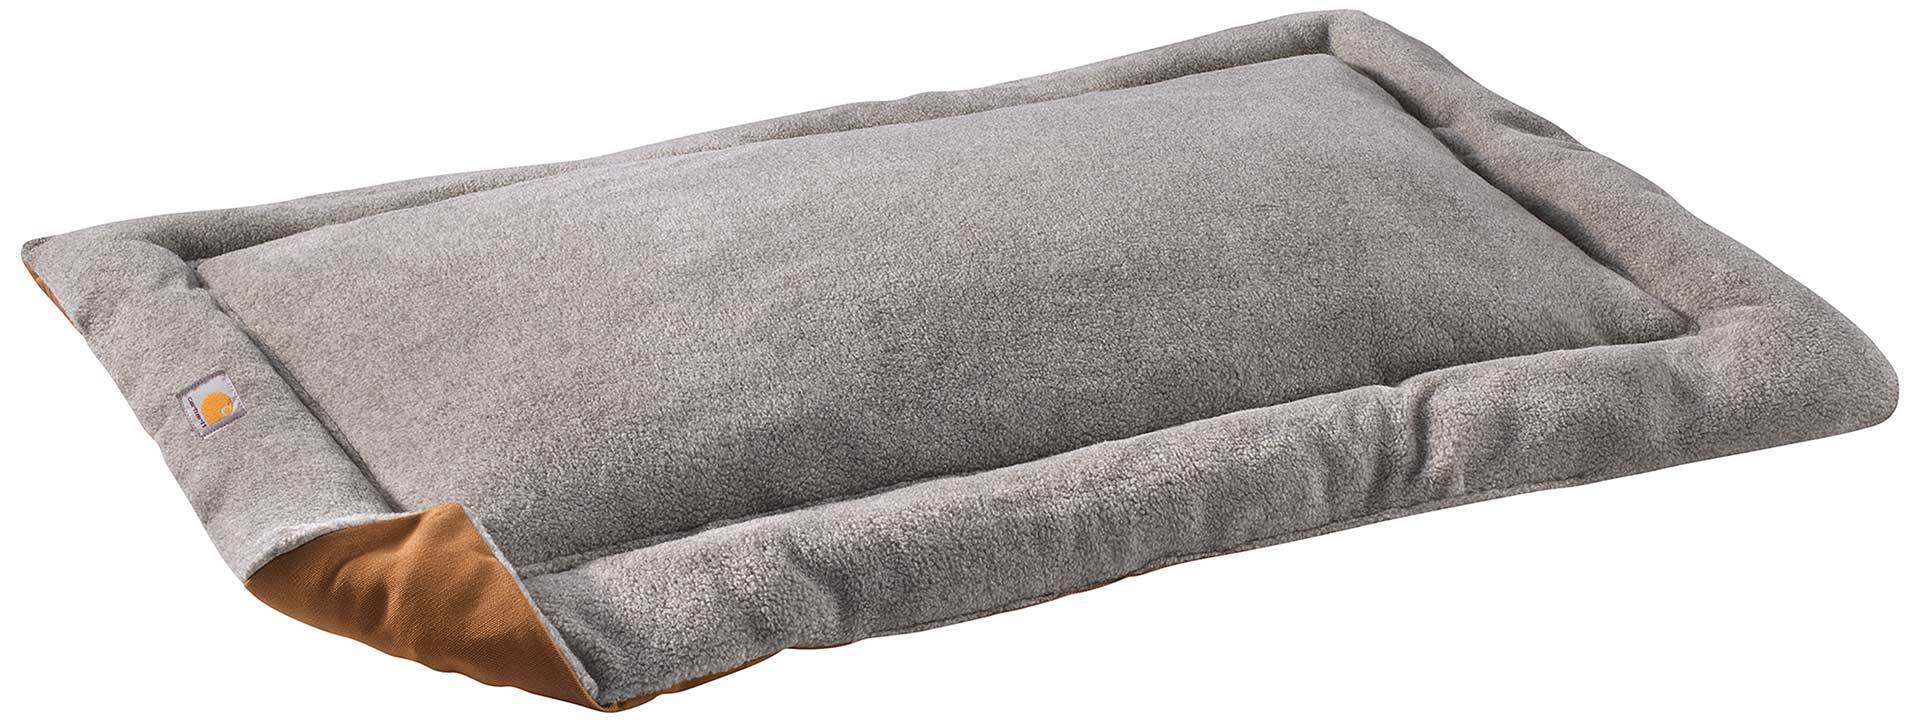 of tips bed beautiful to choose couch indoor carhartt review dog easy fortable